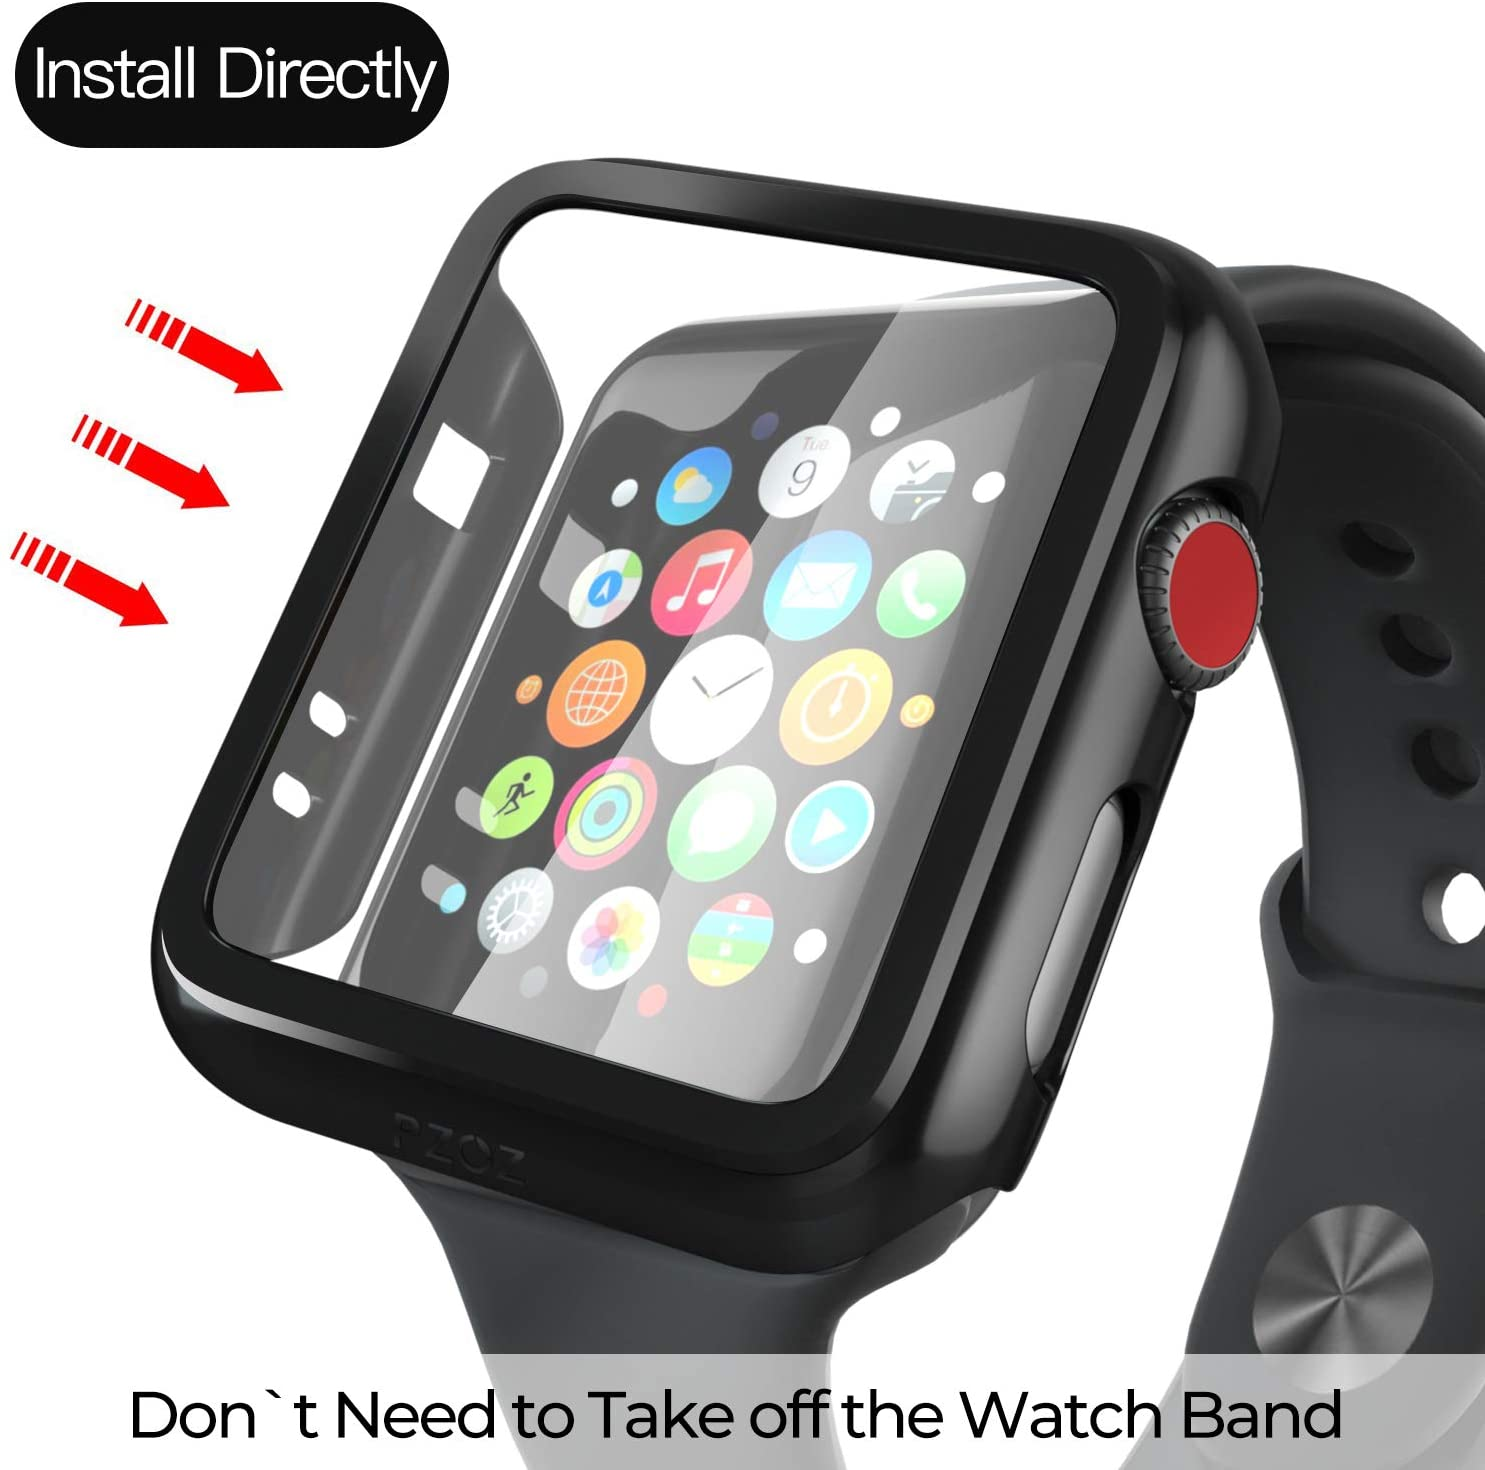 Compatible Apple Watch Series 6 SE Case 44mm 40mm Glass Film With Screen Protector Full Coverage For Iwatch 6 5 4 3 2 42mm 38mm 4